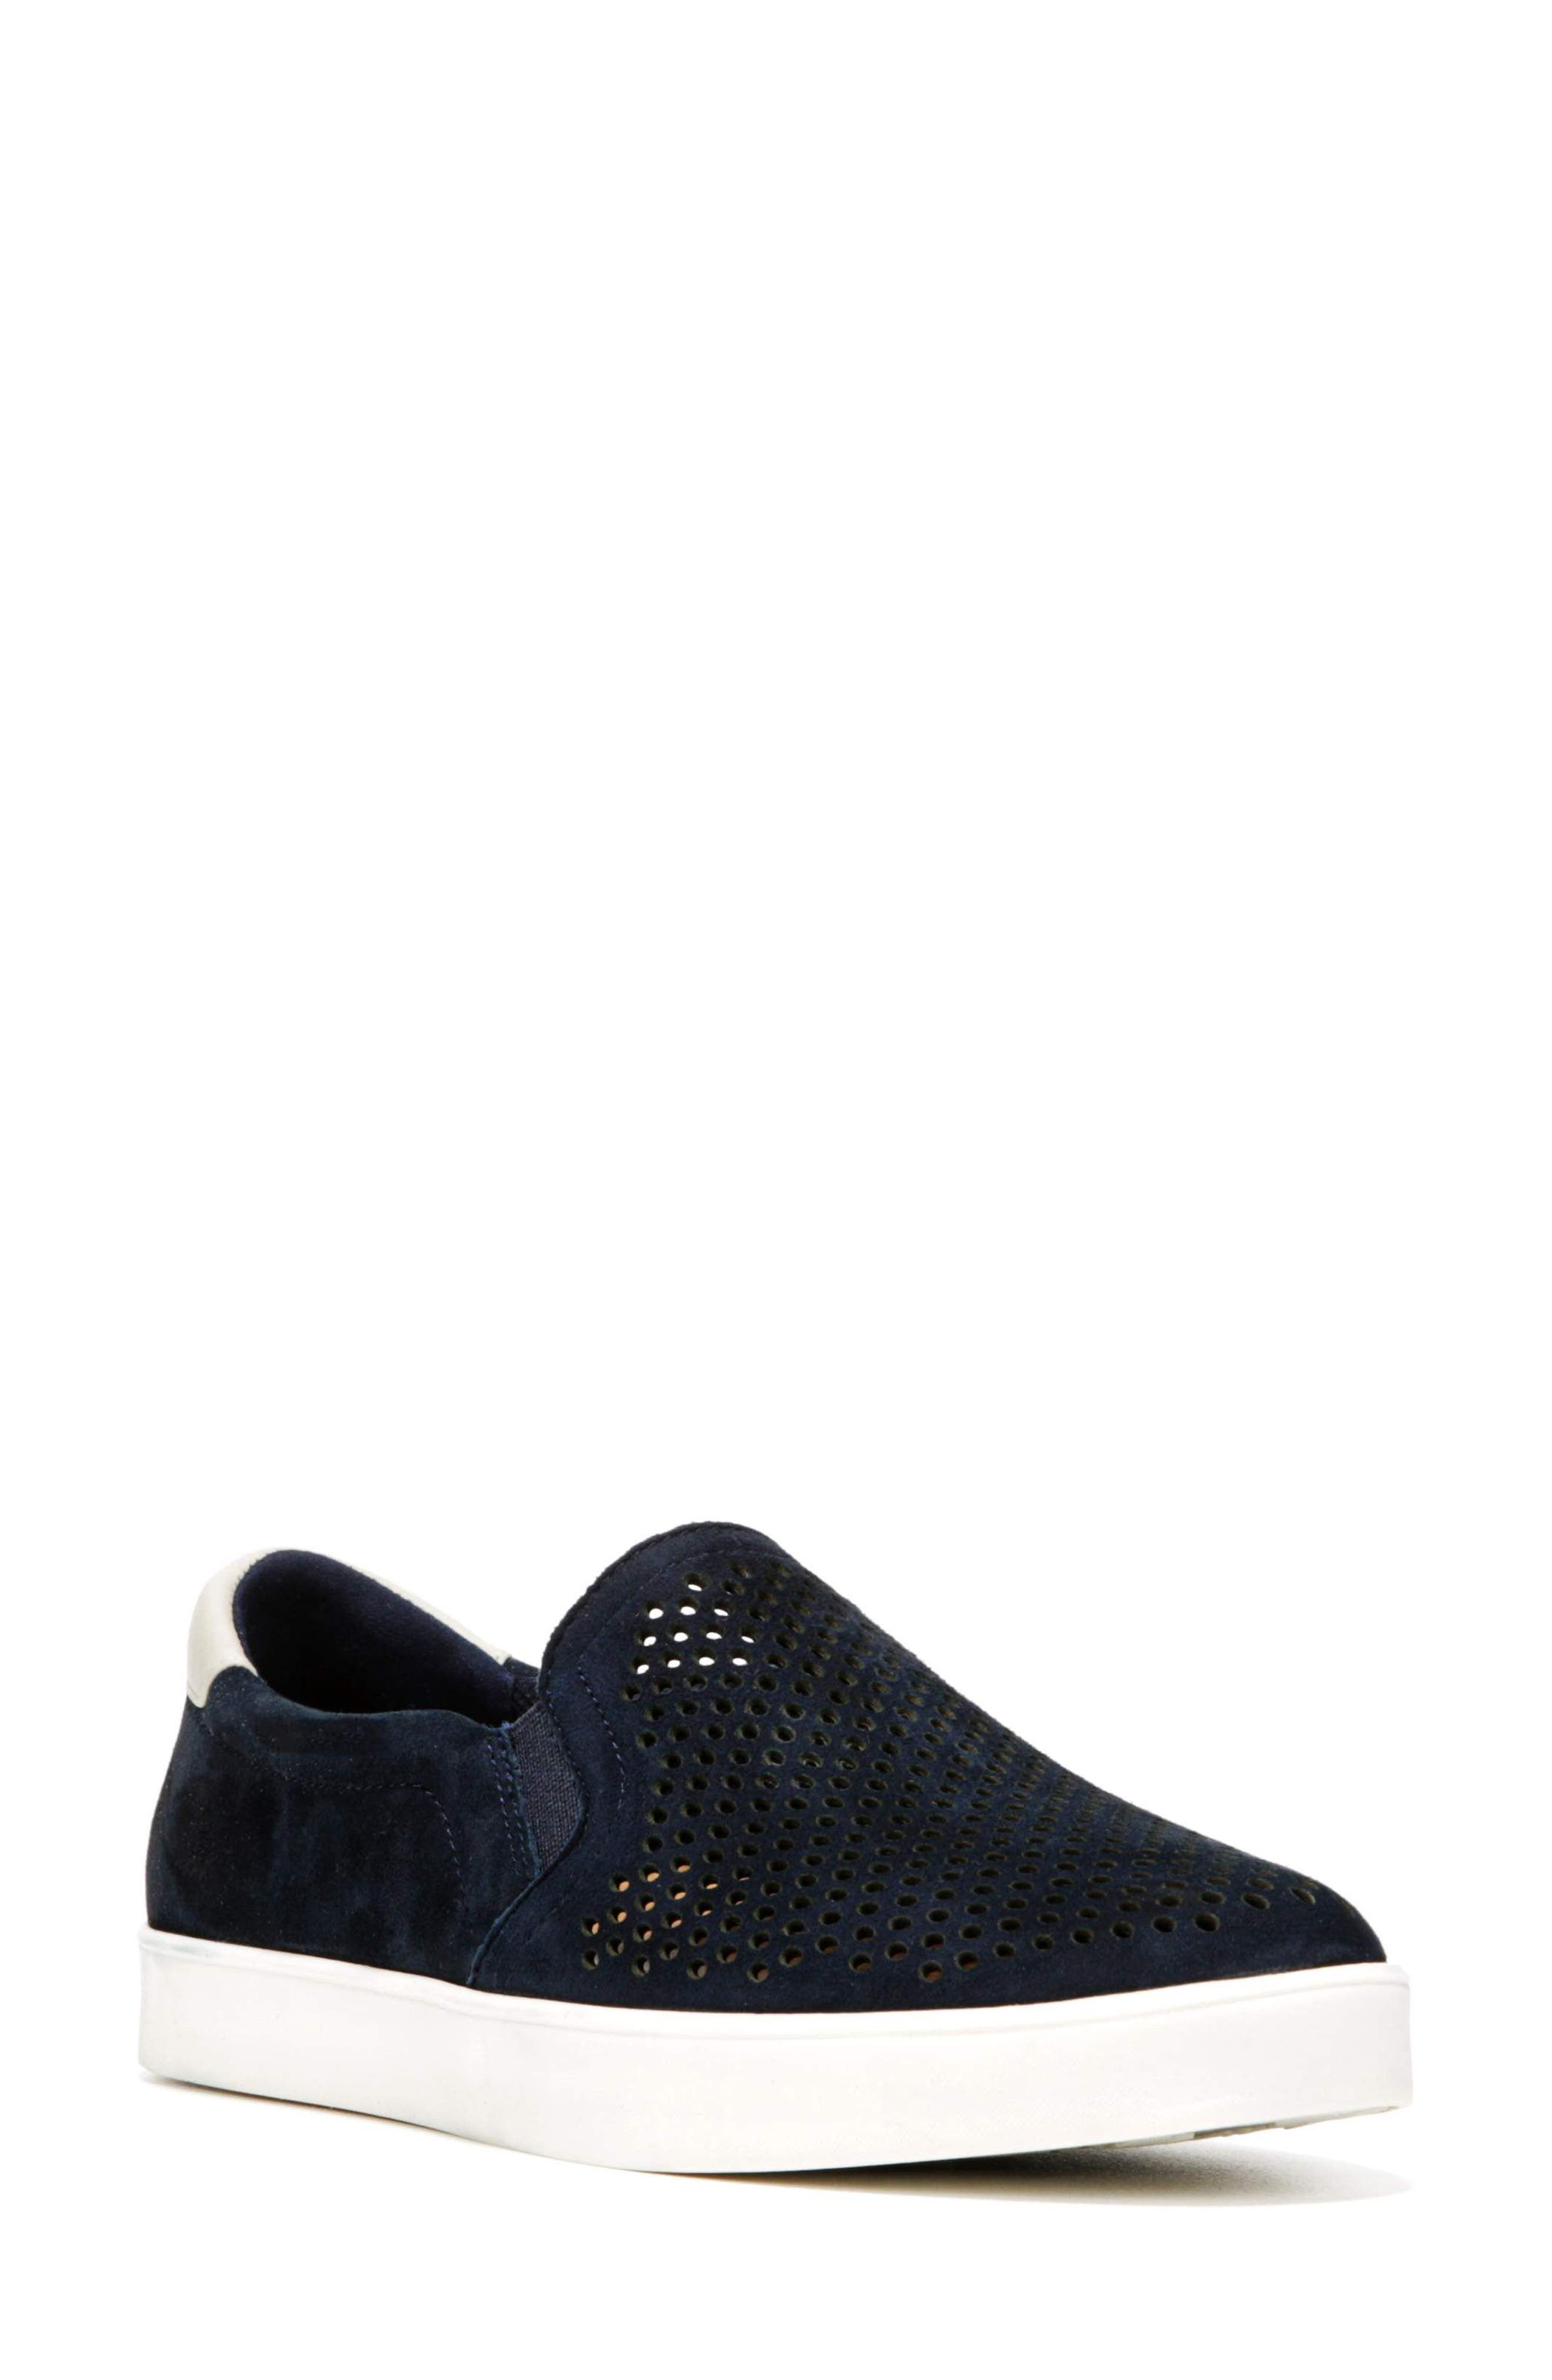 Dr. Scholl's Original Collection 'Scout' Slip On Sneaker (Women)